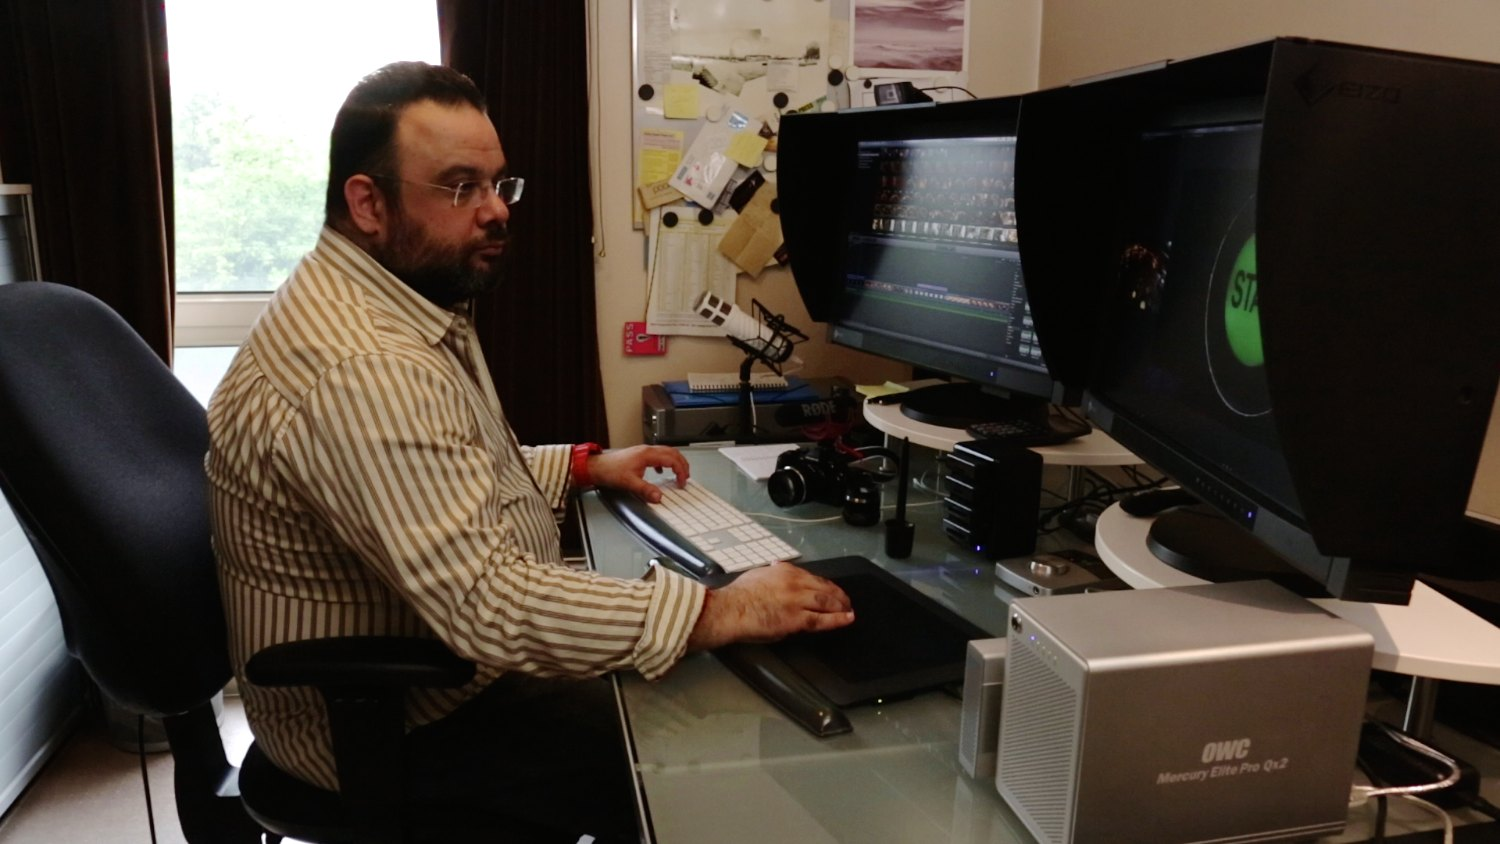 Editing the piece on FCP X and a pair of calibrated Eizo CG277 monitors. 1 Sixpence 1 Play pinball film frame grabs. Photo: Edmond Terakopian